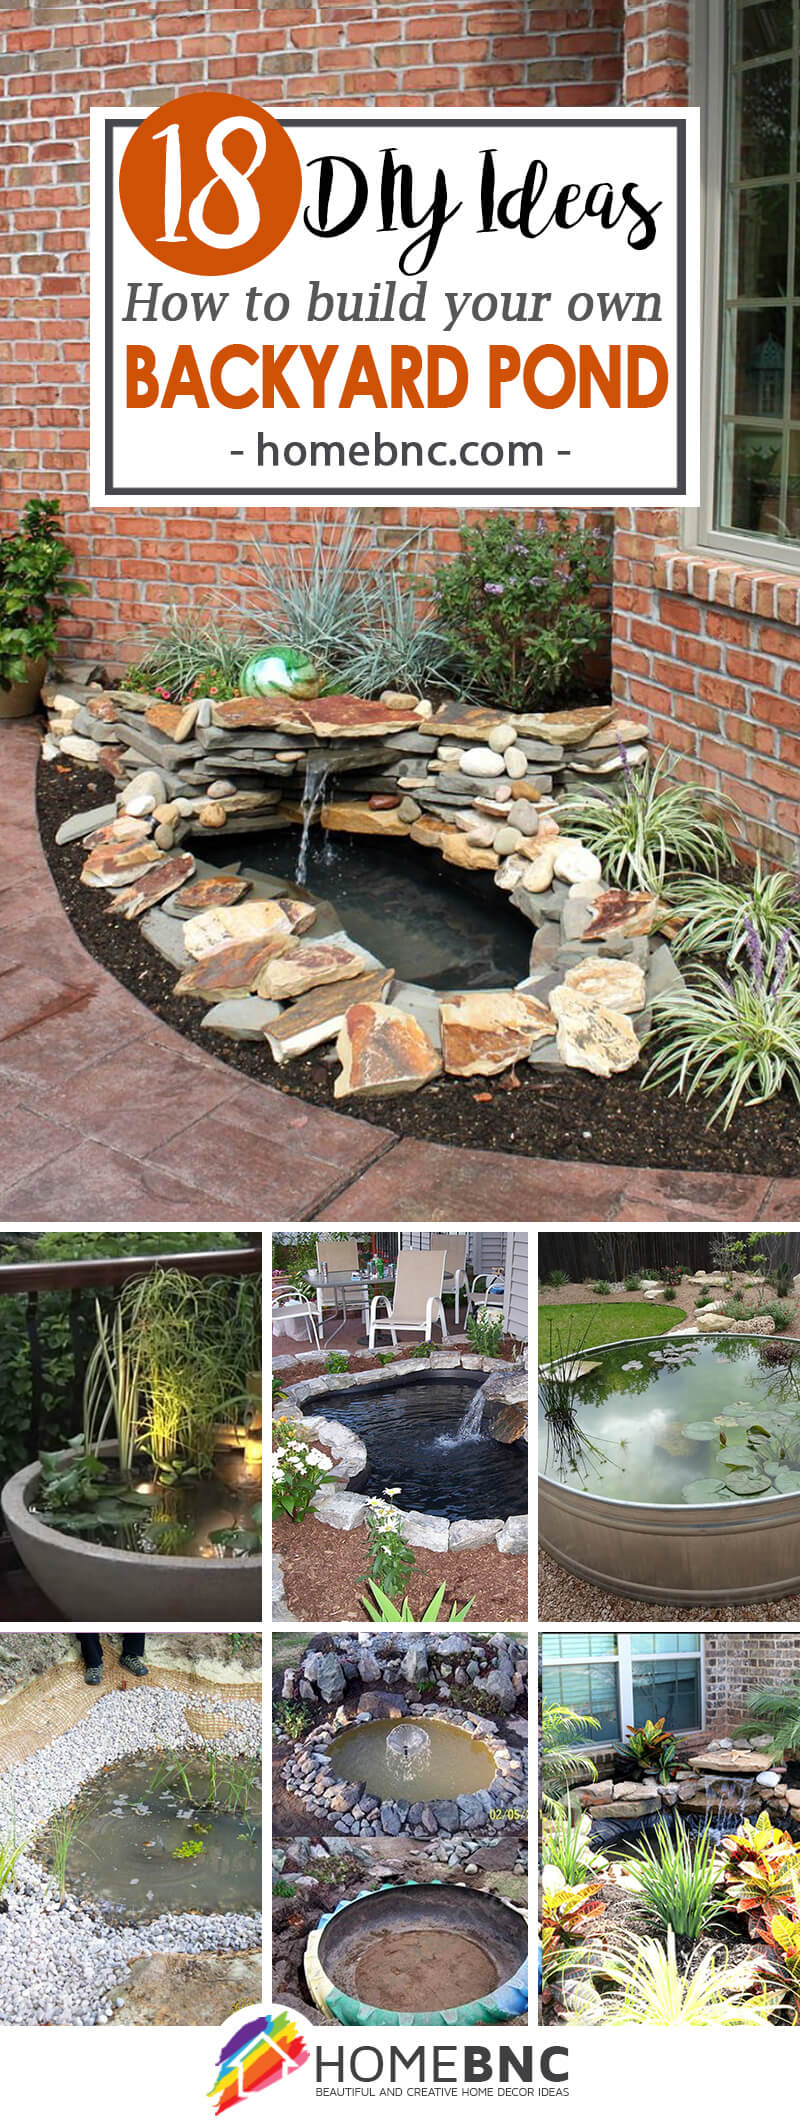 18 Best Diy Backyard Pond Ideas And Designs For 2019 within 10 Genius Designs of How to Make Ponds Ideas Backyard